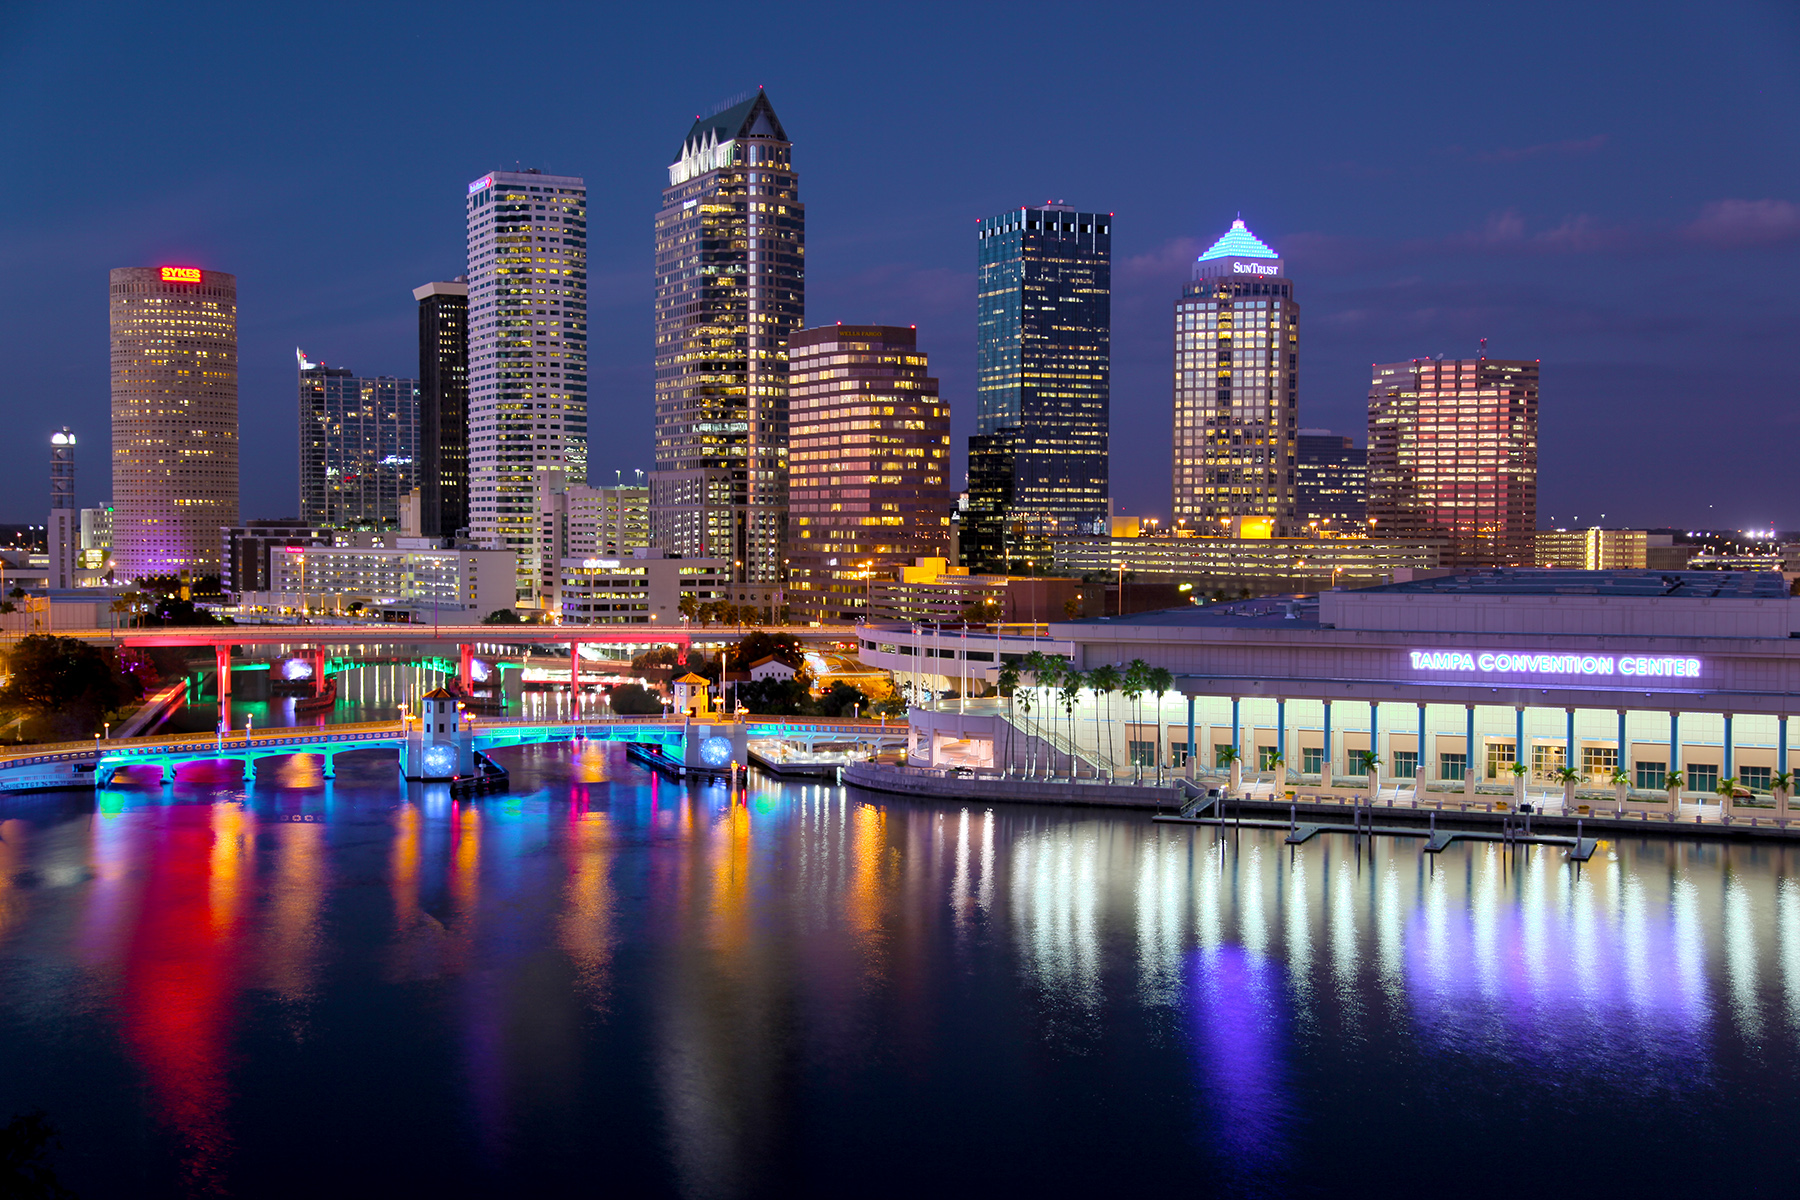 Tampa Electric's permanent economic development rider is a new bright spot in doing business in Tampa.